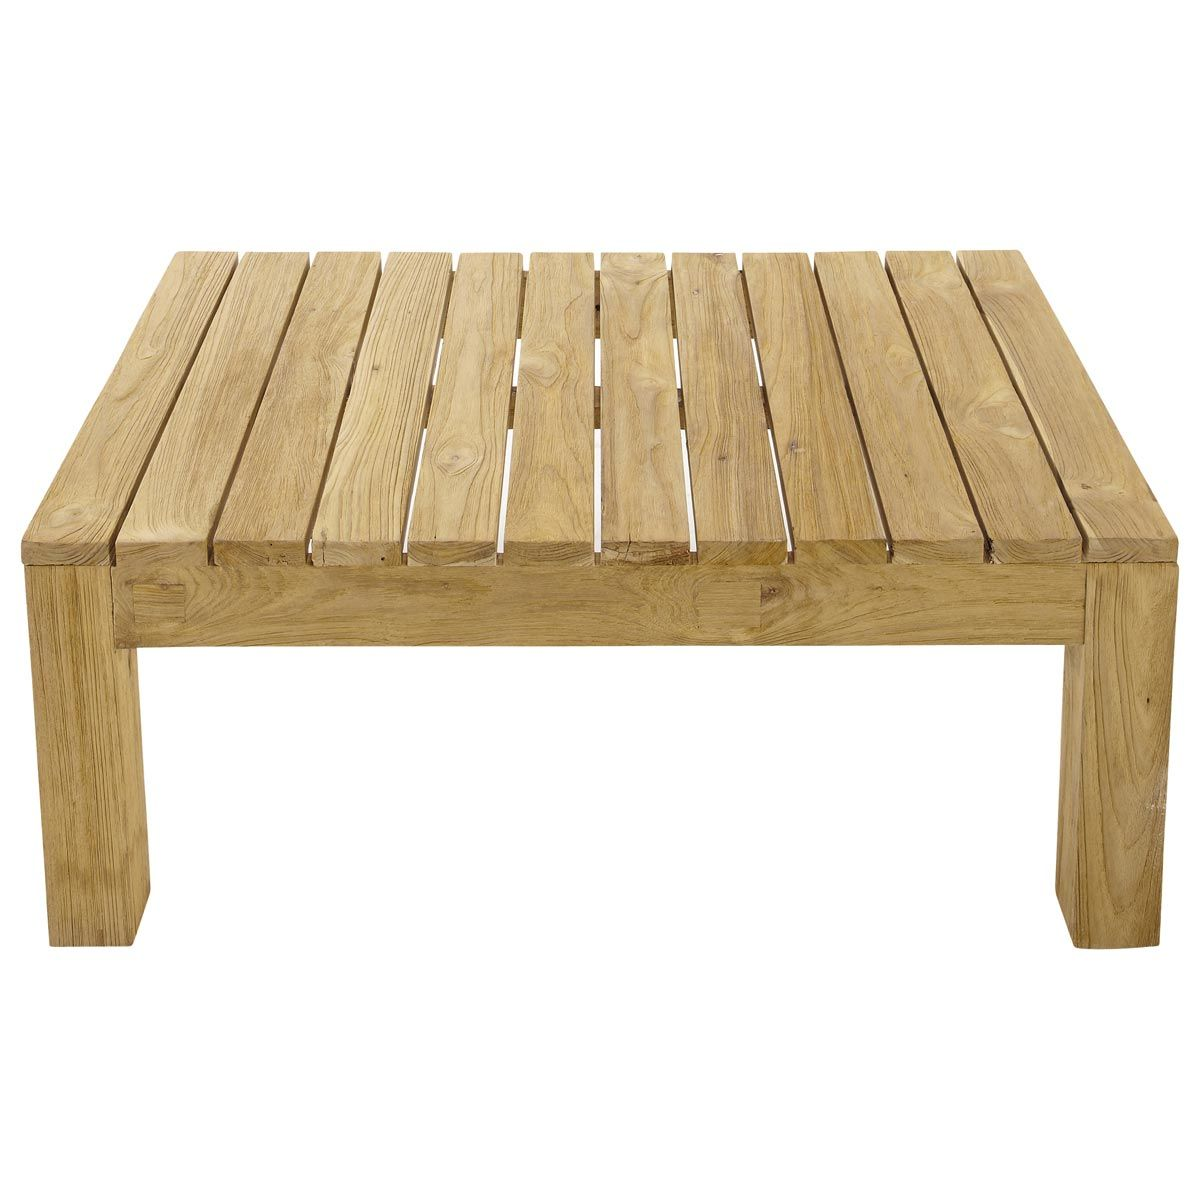 Table basse de jardin en teck L 102 | table basse | Pinterest ...